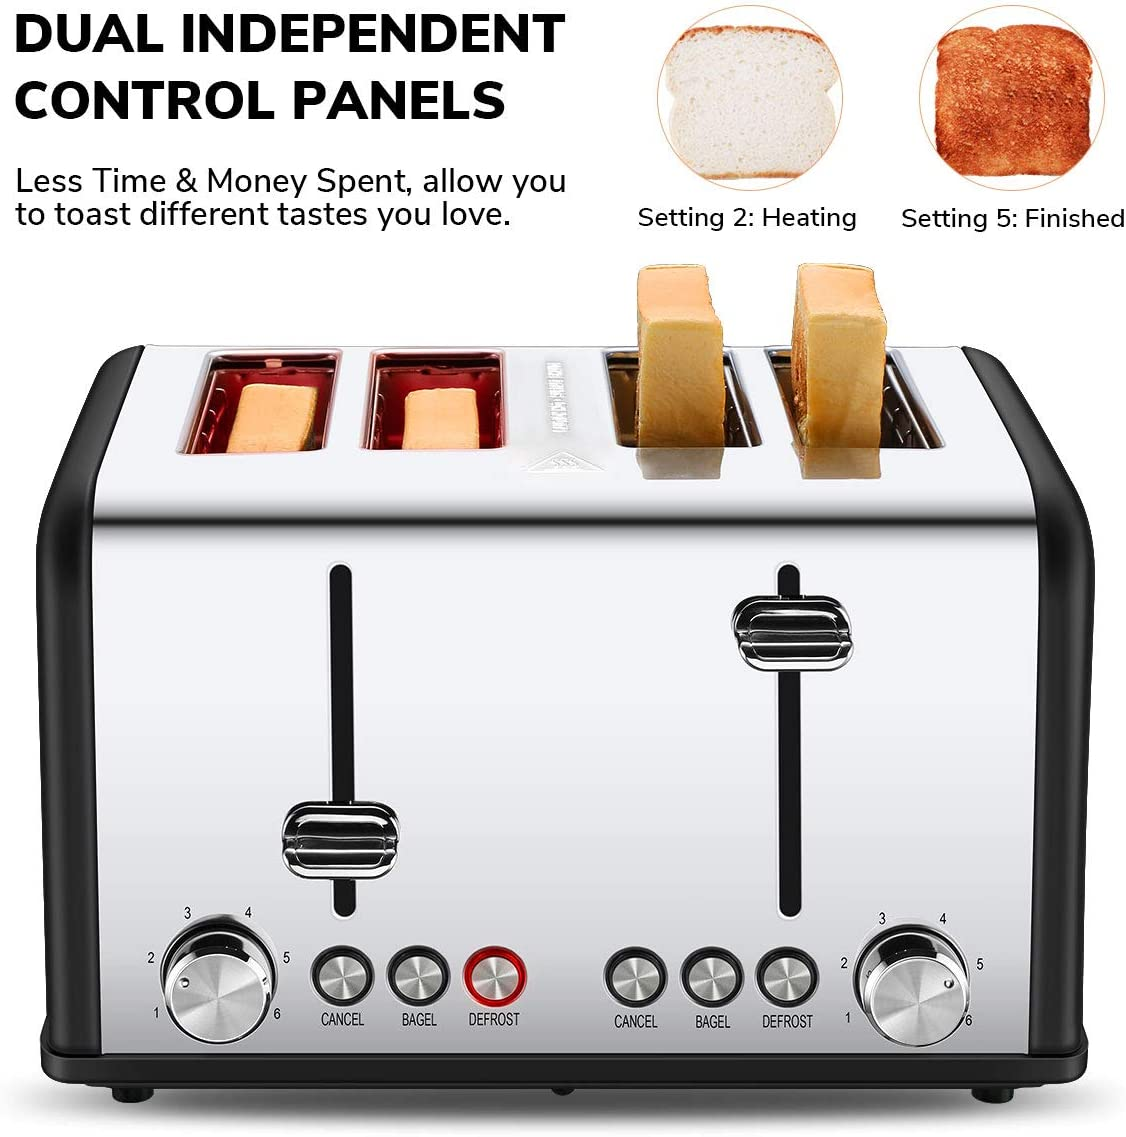 Extra Wide Slots Four Slice Bread Bagel Toaster 1650W Black Toaster 4 Slice CUSIBOX Stainless Steel Toaster with Bagel//DEFROST//Cancel Function